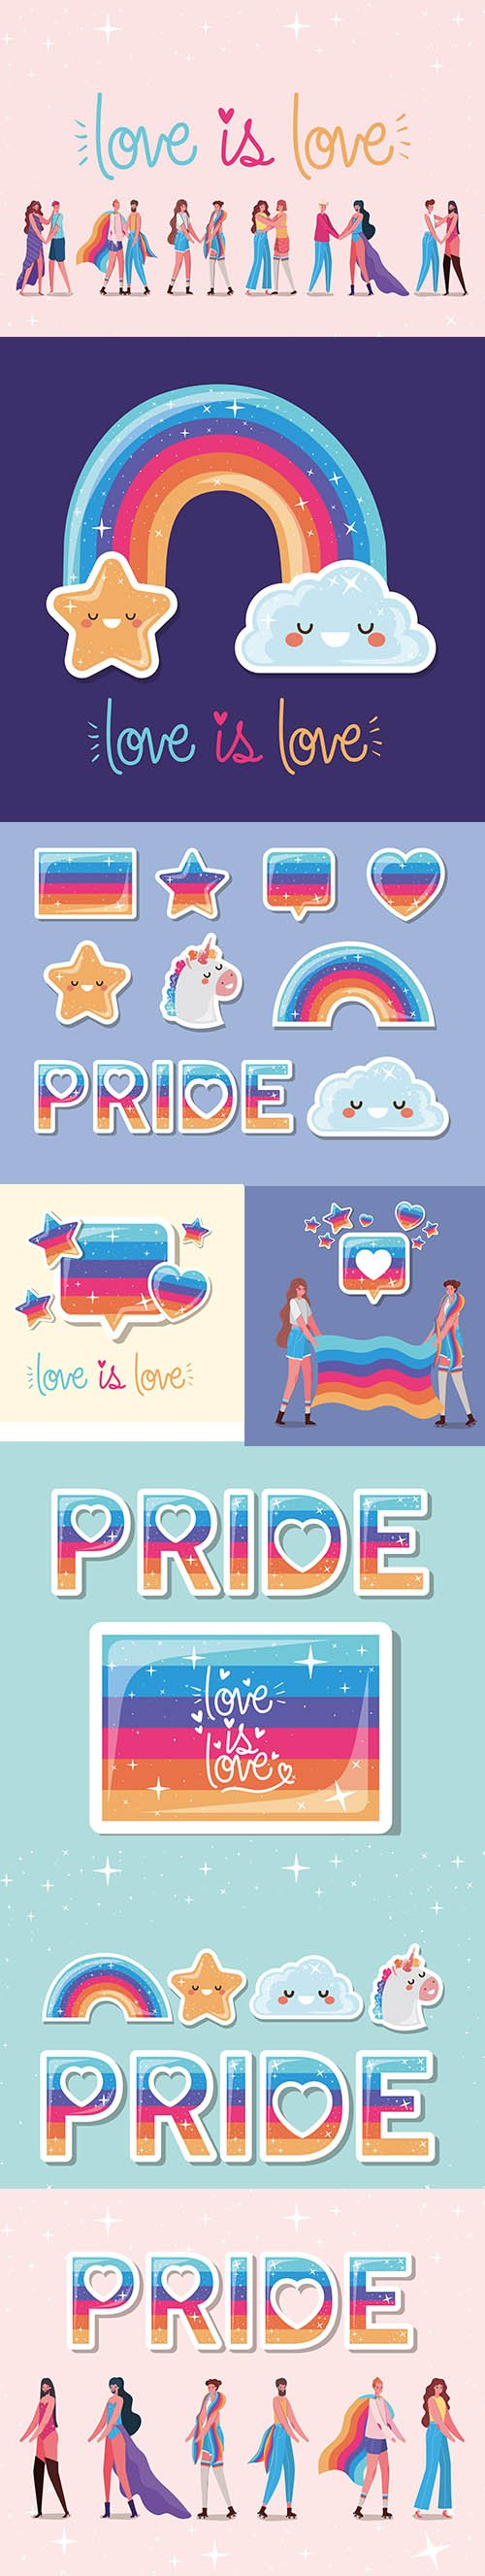 Colorful Images Love is Love